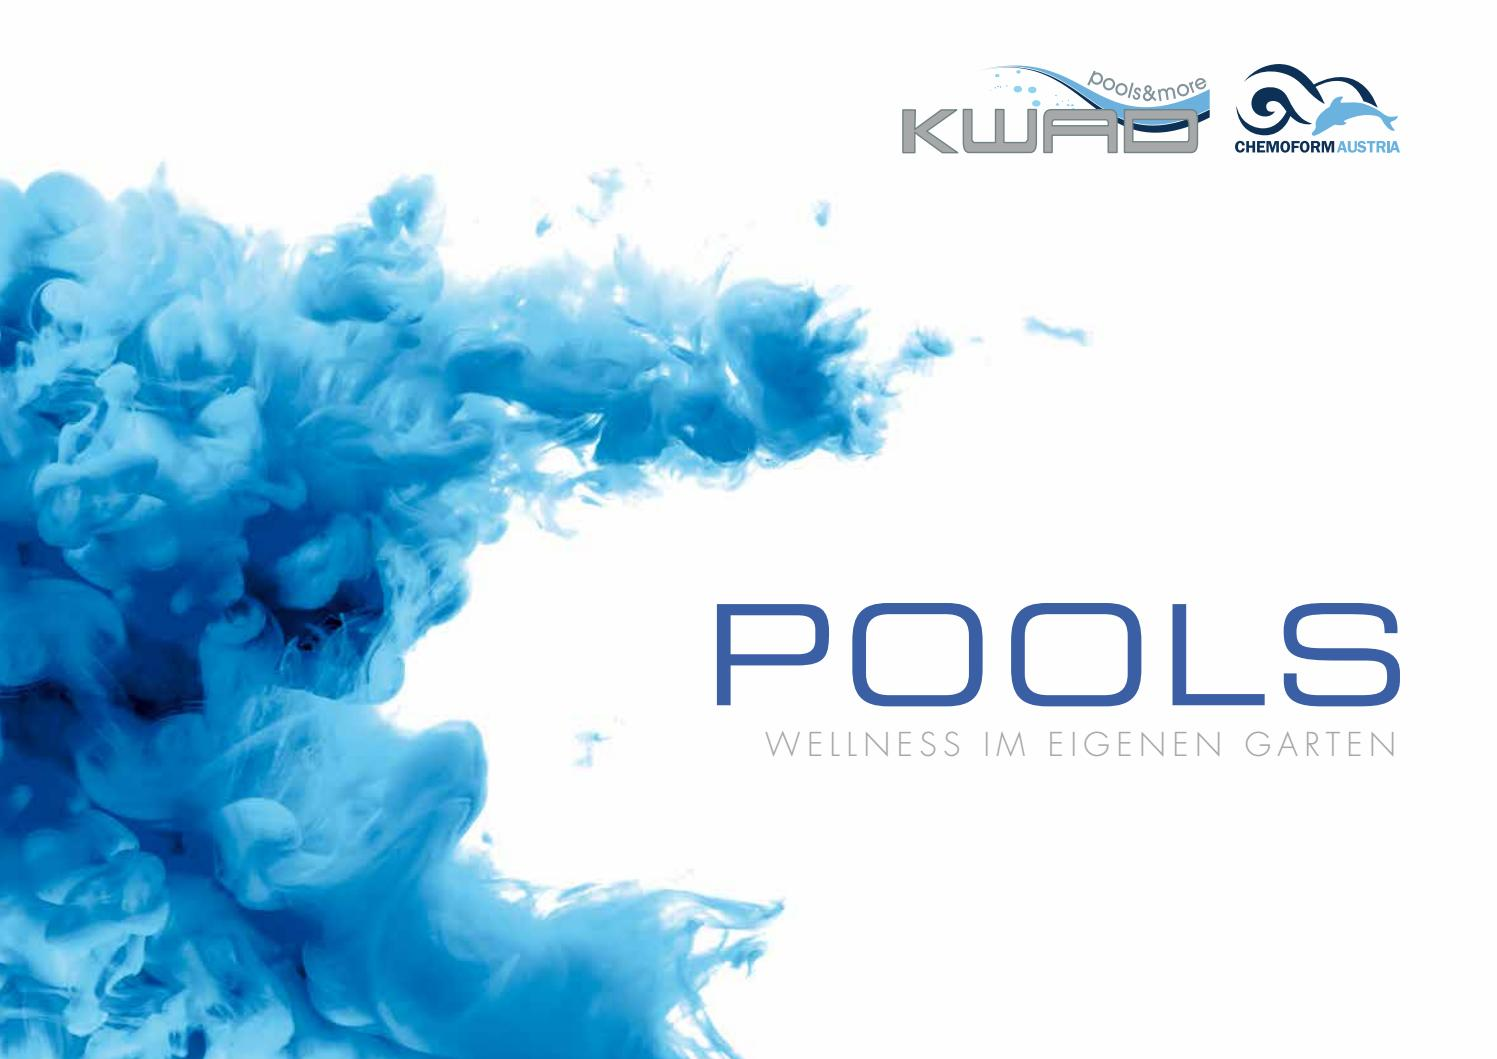 Pool Liner Rund 360 Kwad Pools 2017 By Crearteam Weißkirchen Issuu